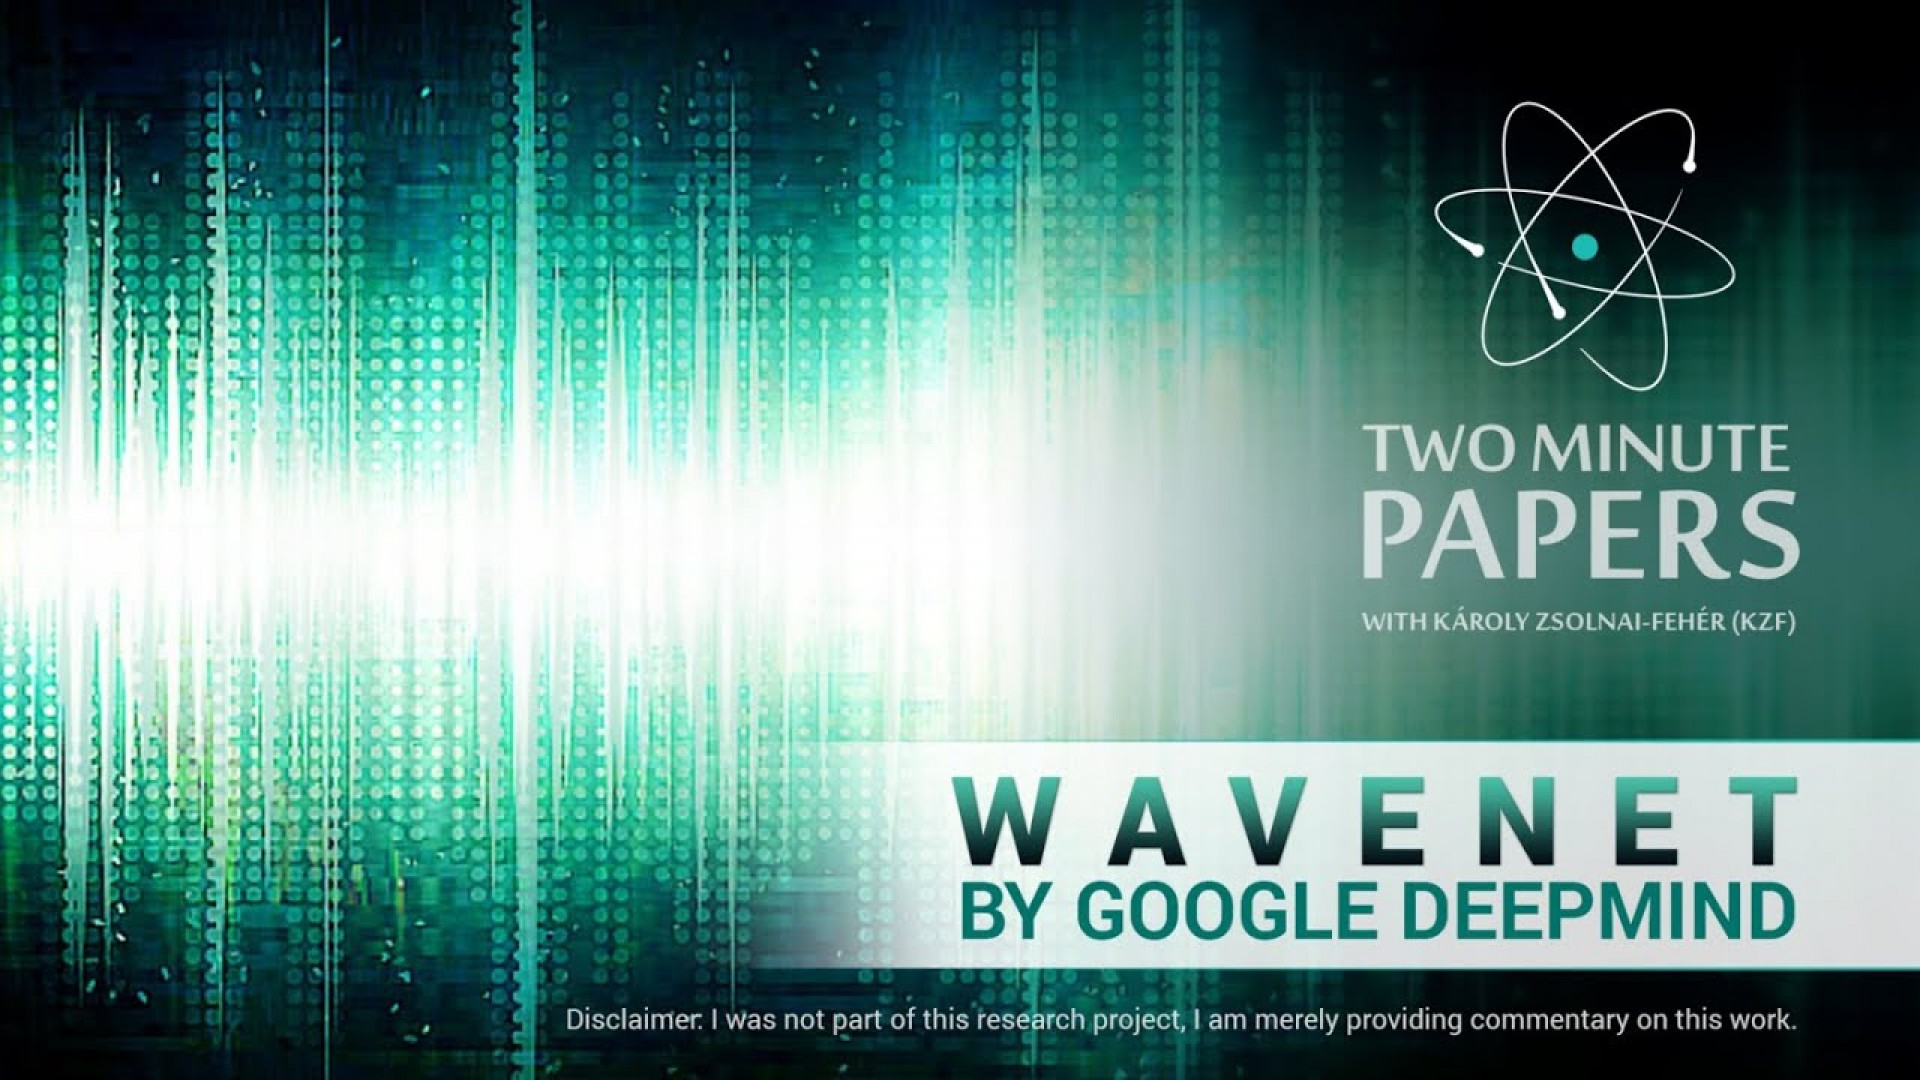 002 Research Paper Google Deepmind Papers Outstanding 1920